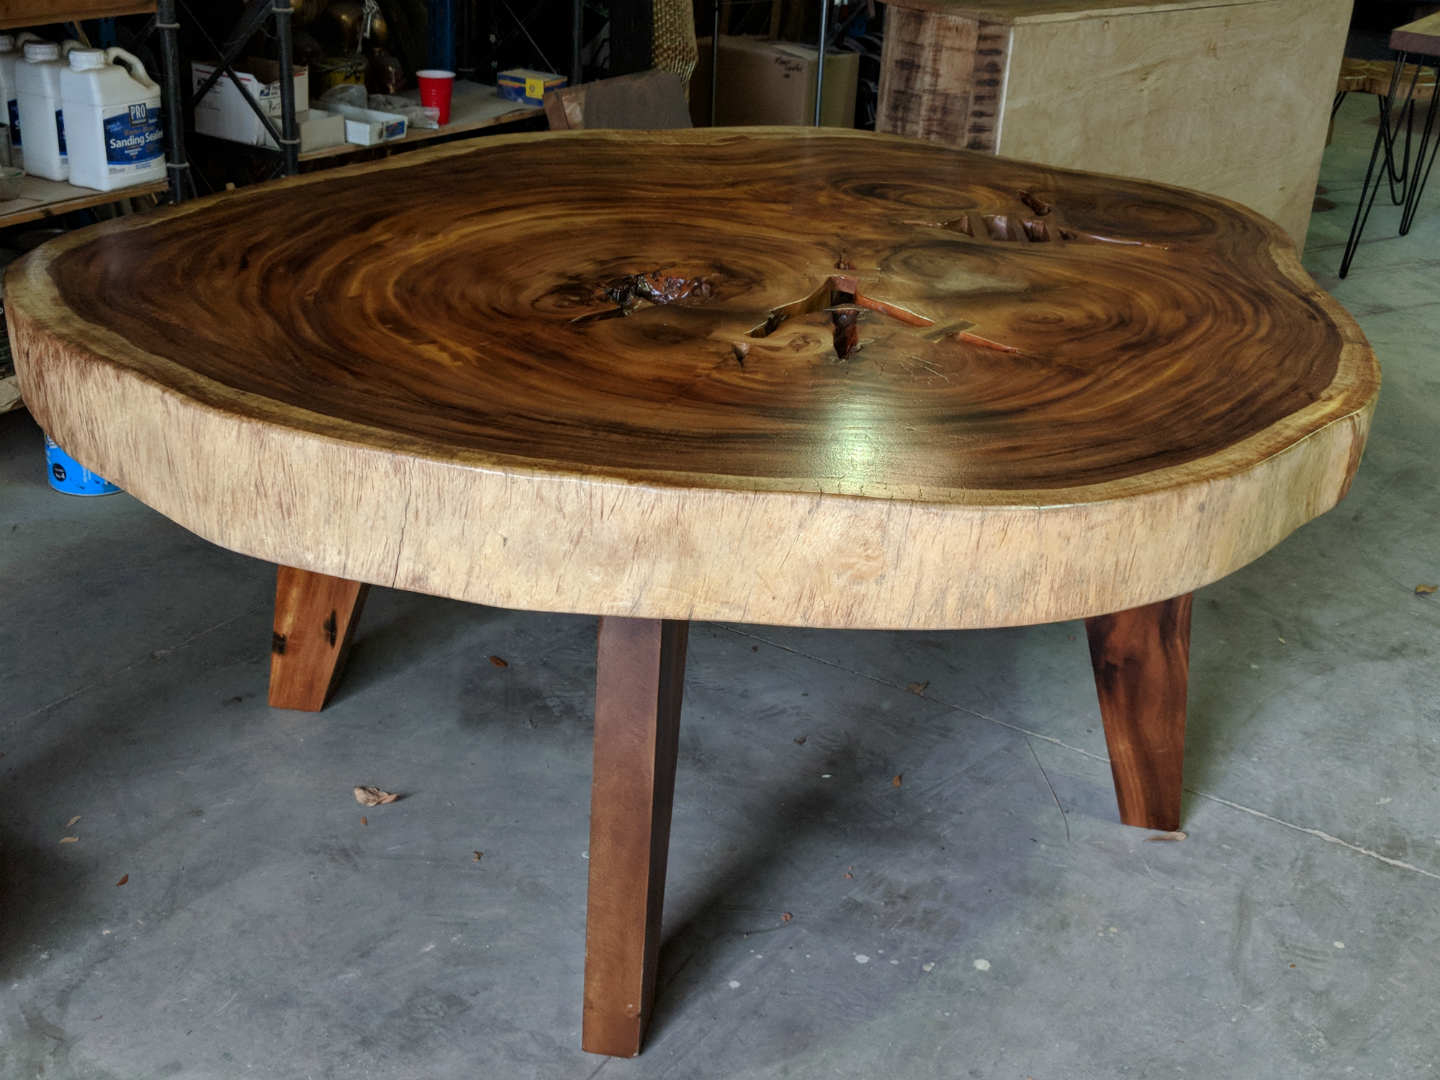 round slab dining tables decor direct whole wood accent table you find just the right already finished and ready otherwise can choose your own live edge slabs style them for